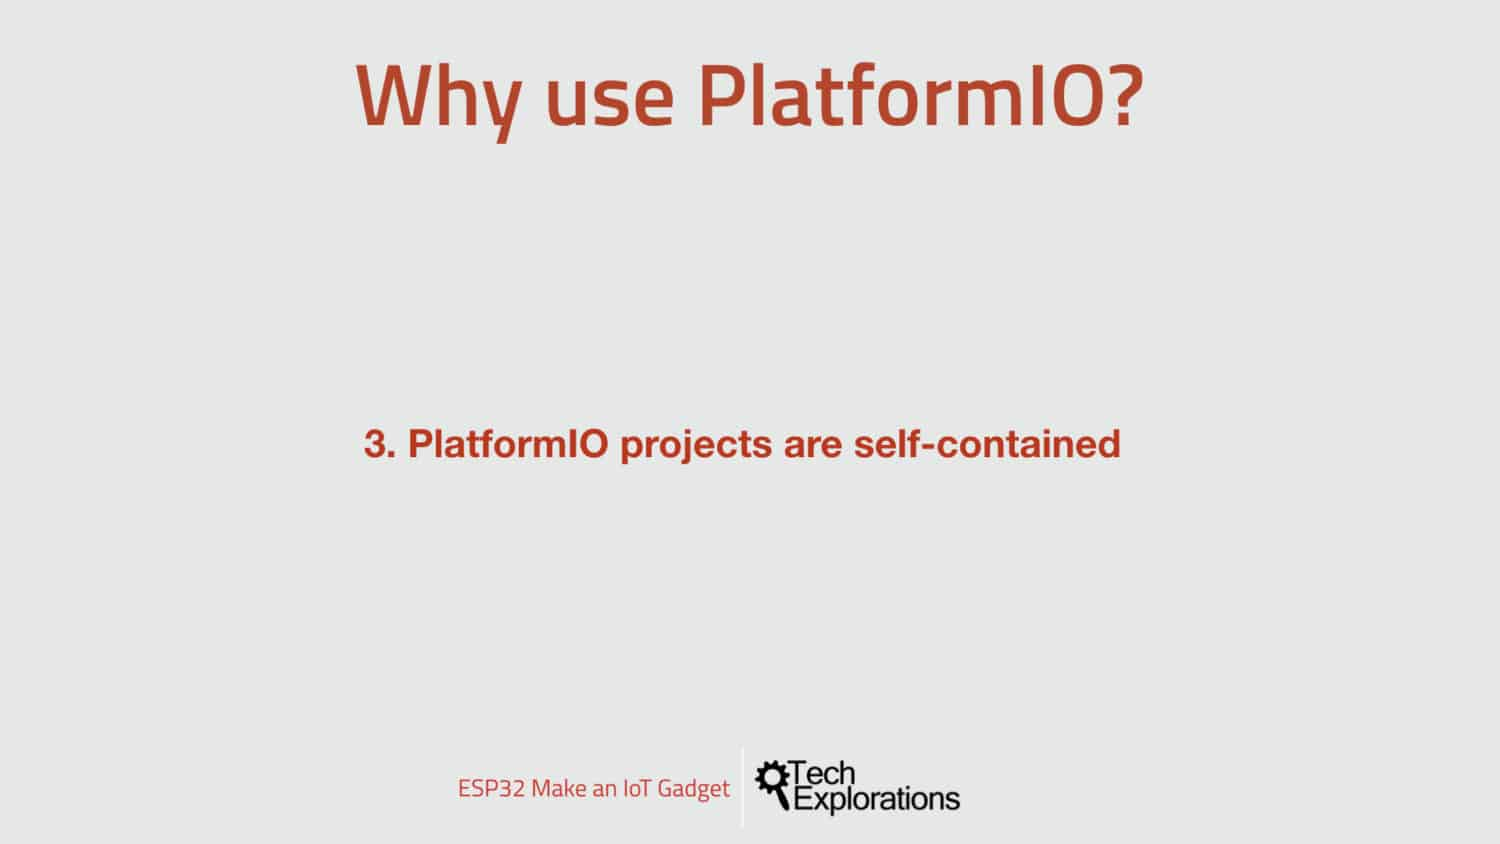 Reason 3: In PlatformIO, projects are self-contained.